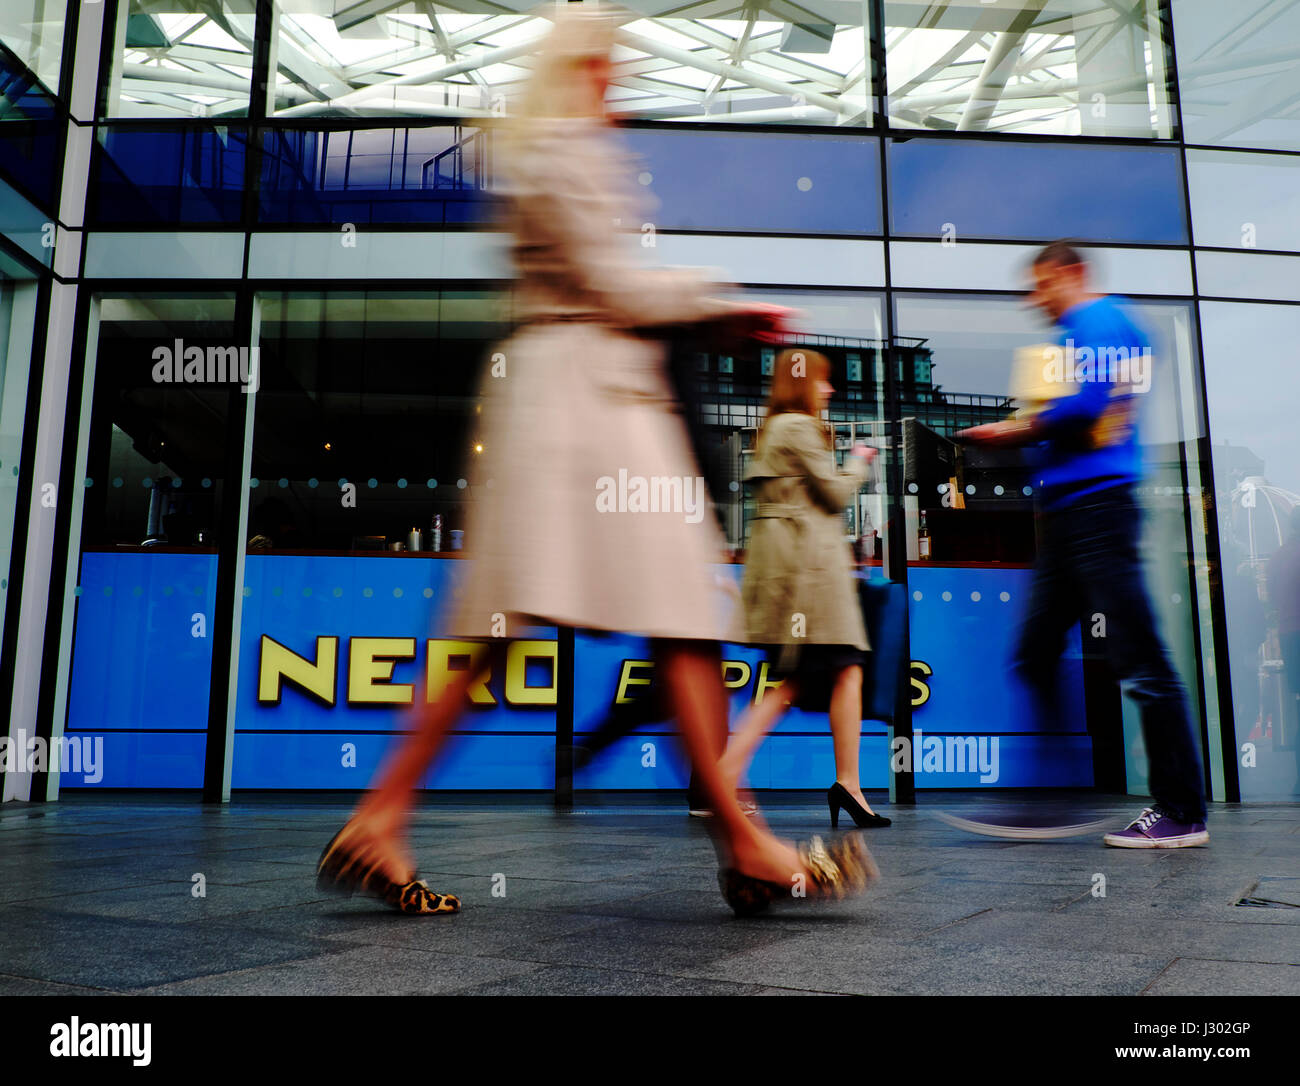 Commuters walk past a branch of Caffe Nero at Kings Cross Station in London - Stock Image